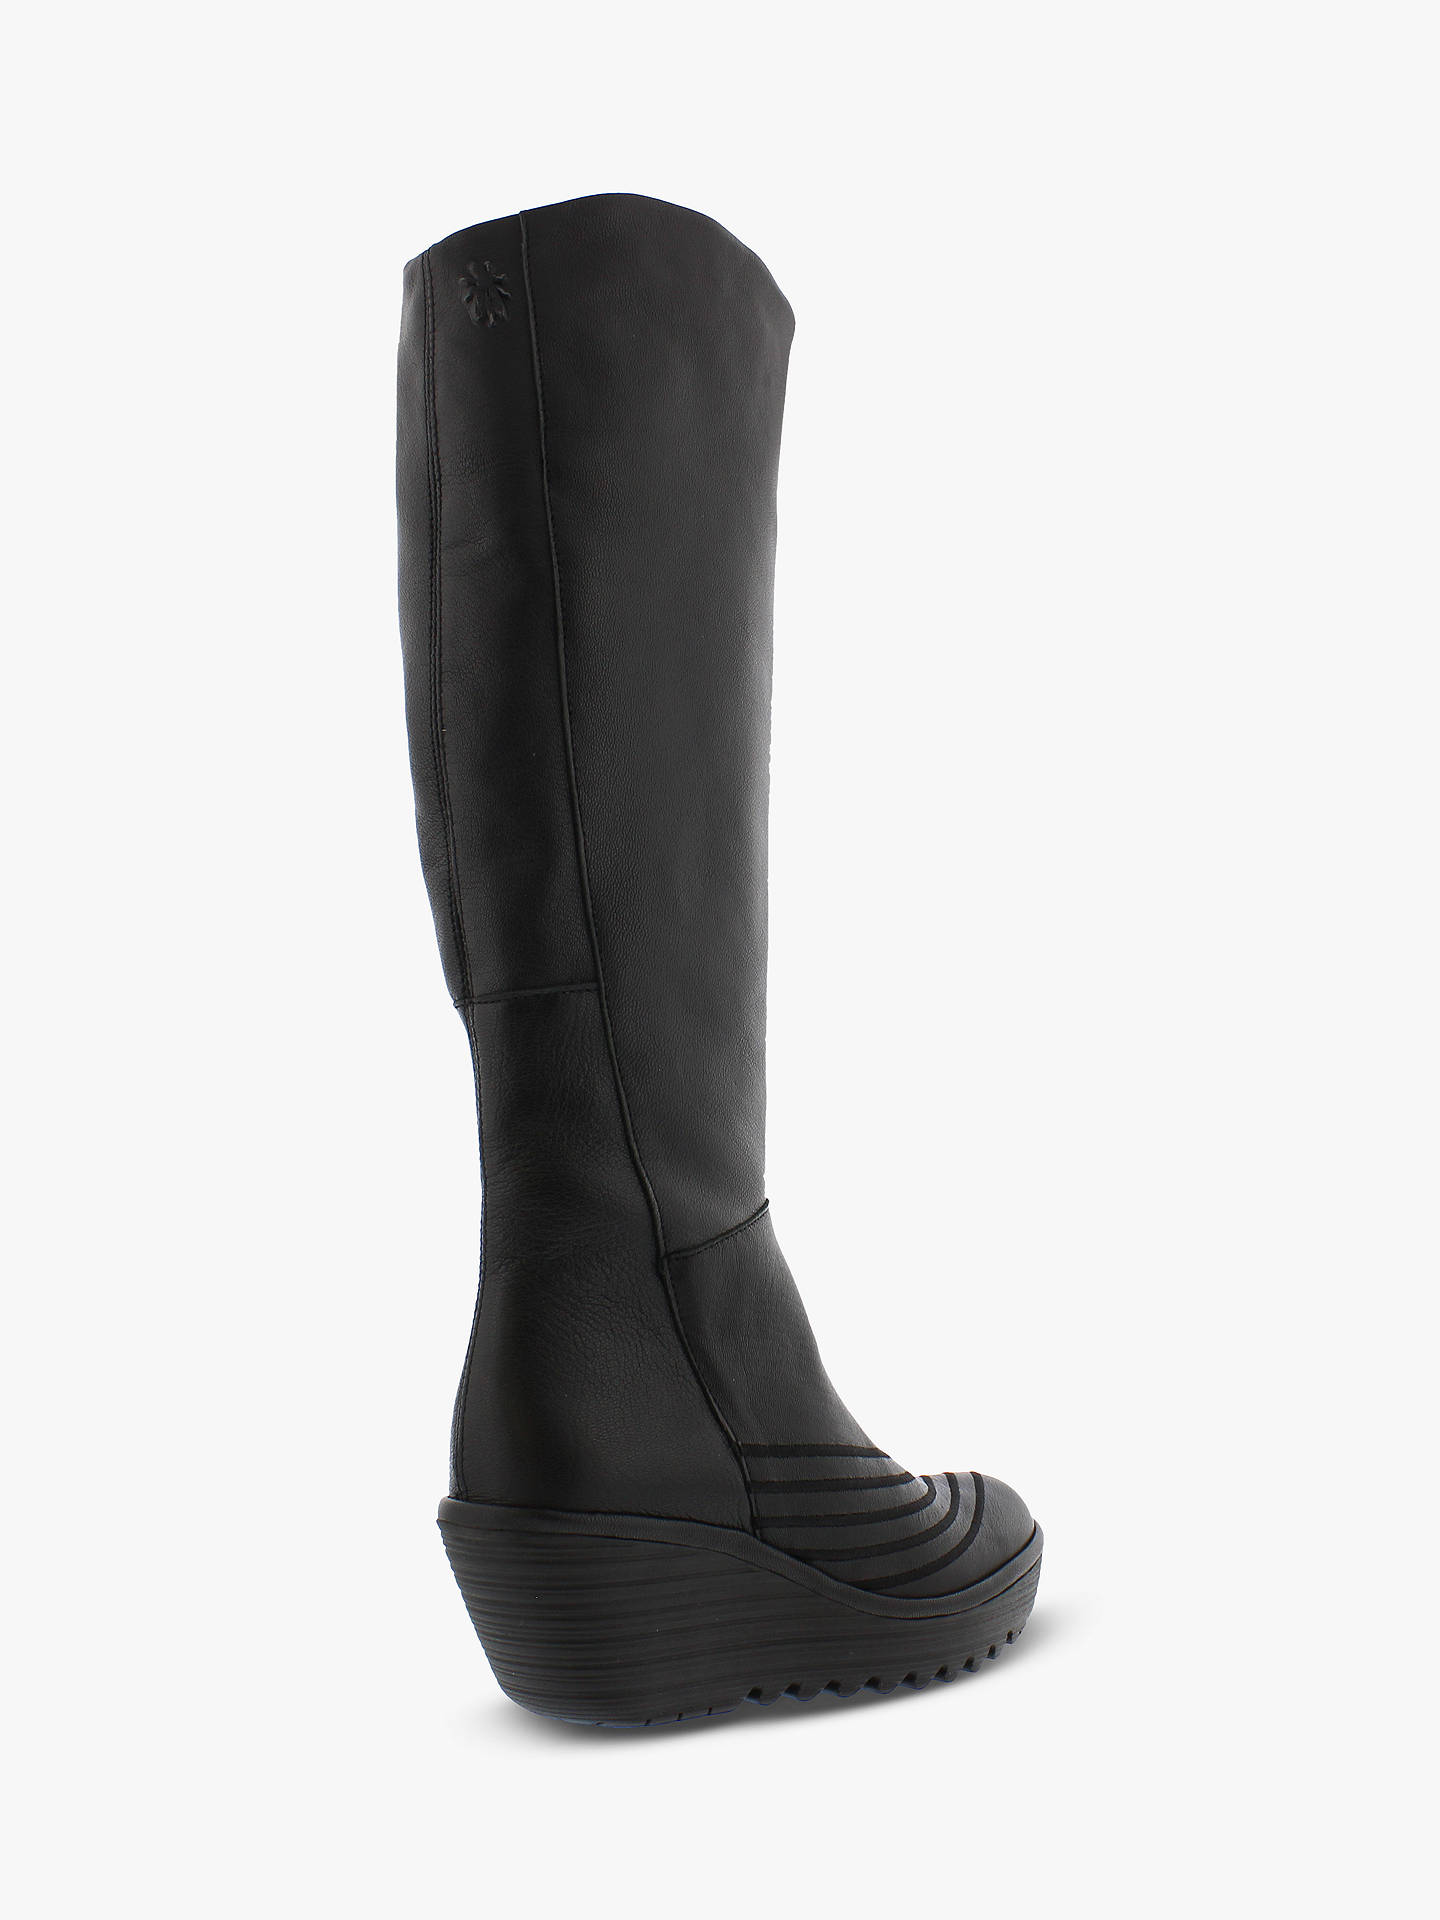 yet not vulgar discount double coupon Fly London Yuli065Fly Leather Wedge Heel Knee High Boots, Black